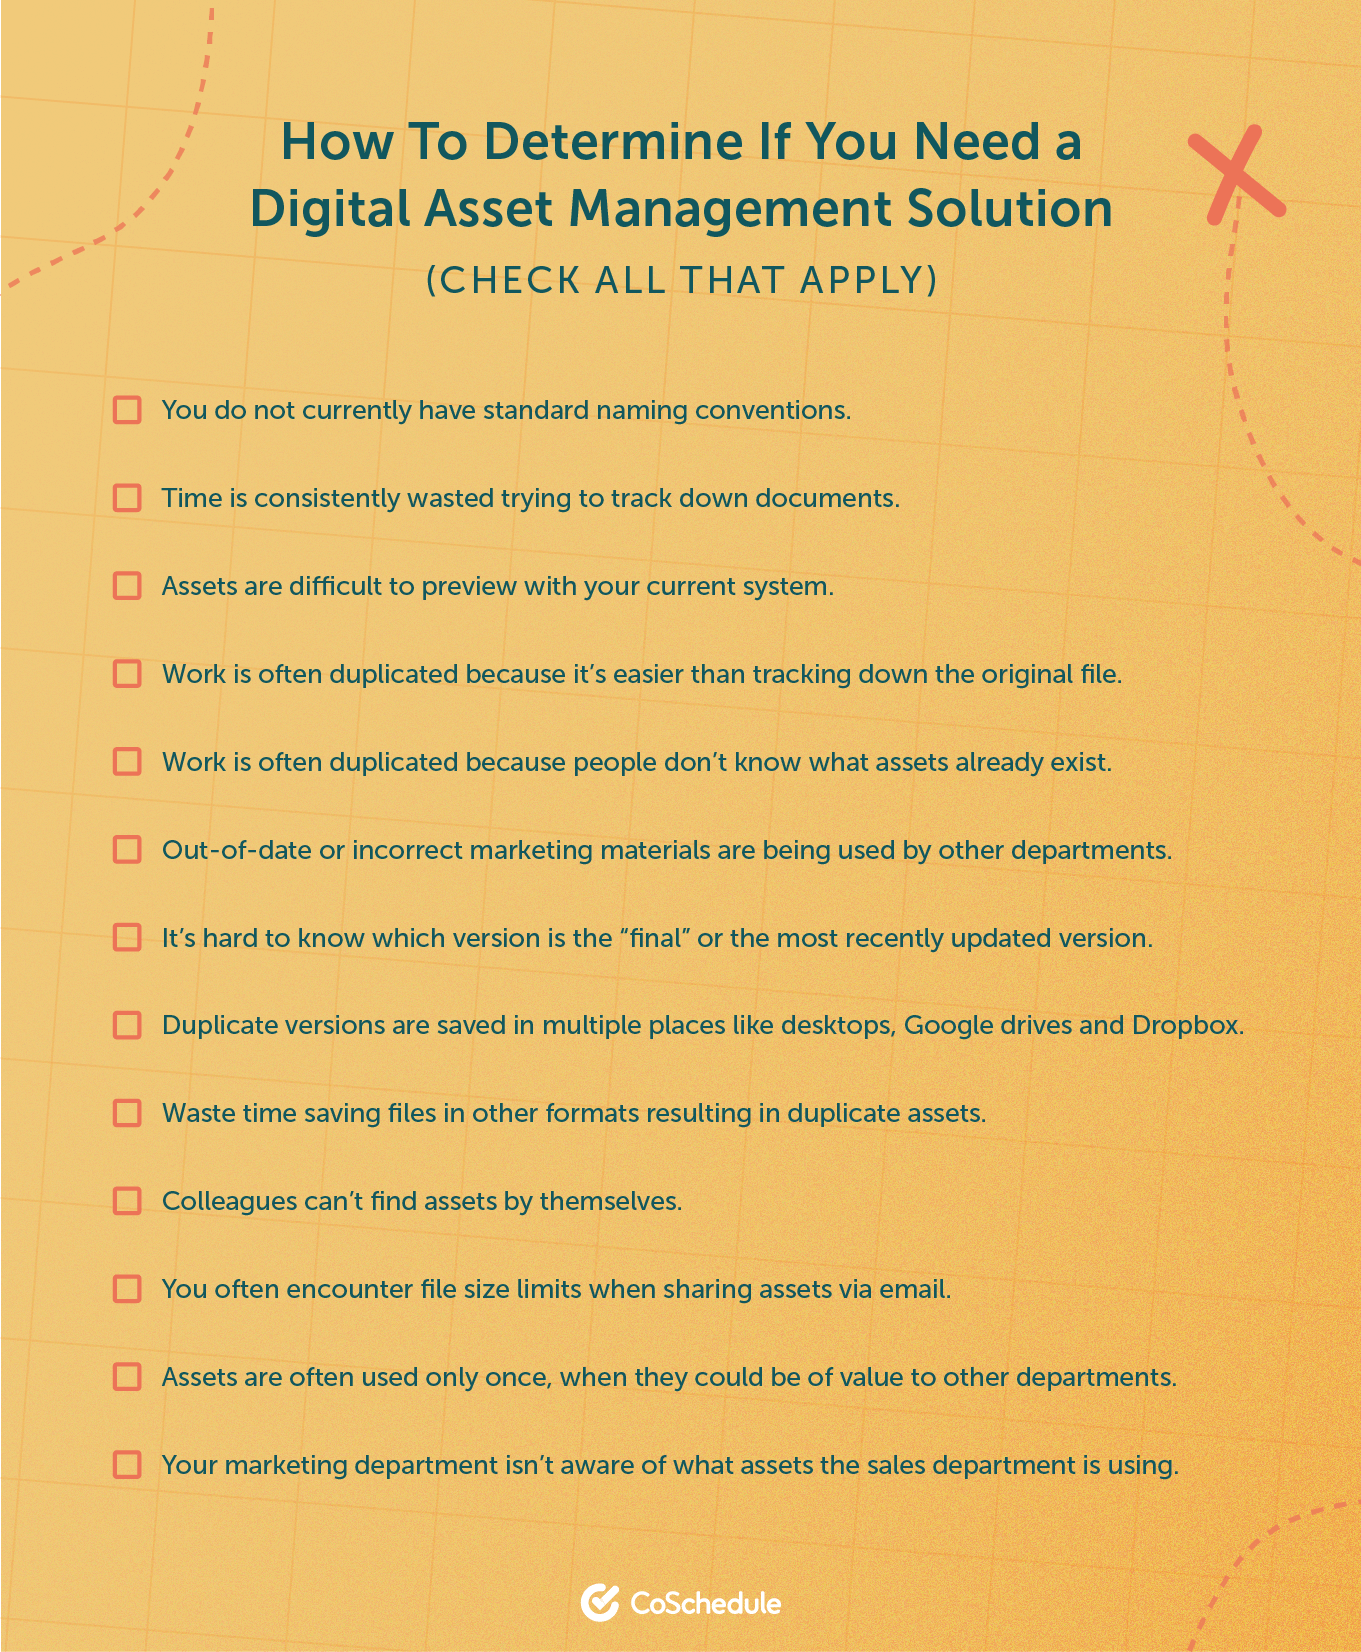 Check all that apply to determine if you need DAM as a solution.